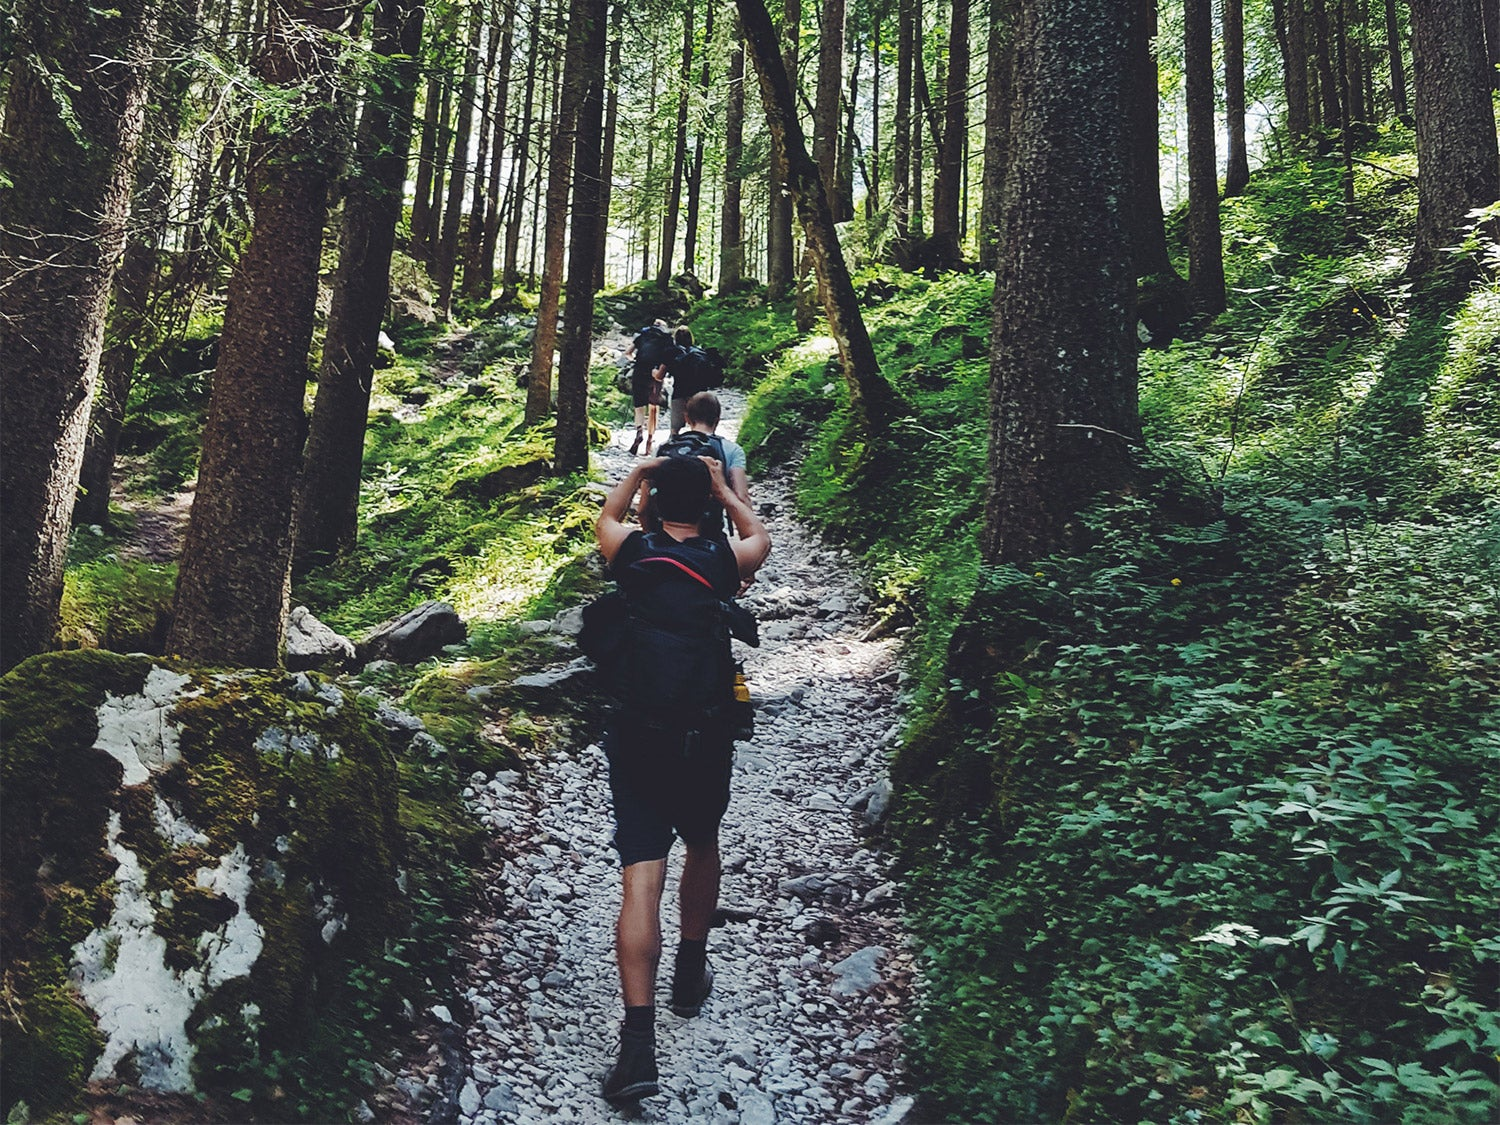 A group of people hiking through a lush, green wilderness trail, some wearing the best men's hiking shoes.